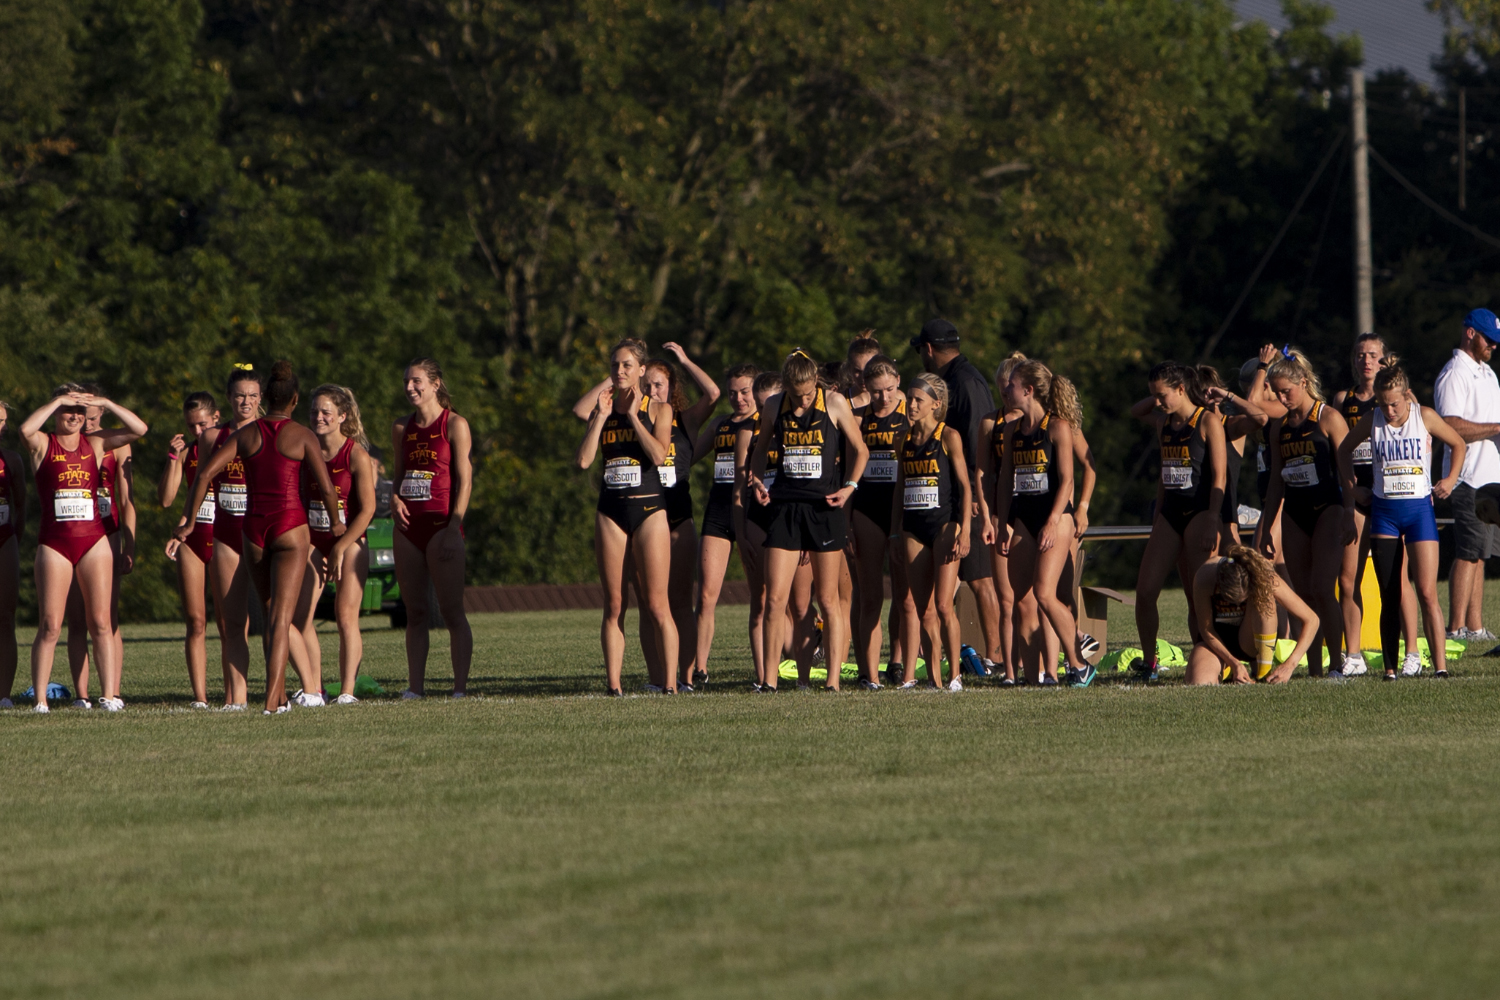 Runners+prepare+to+start+the+4000+meter+race+during+the+Hawkeye+Invitational+on+Friday%2C+Sept.+6%2C+2019+at+the+Ashton+Cross+Country+Course.+The+Hawkeyes+prevailed+over+six+other+teams+to+win+first+place+overall+in+the+men%E2%80%99s+and+women%E2%80%99s+races.+Iowa+State+University+runner+Abby+Caldwell+finished+in+first+place+with+a+time+of+14%3A02.